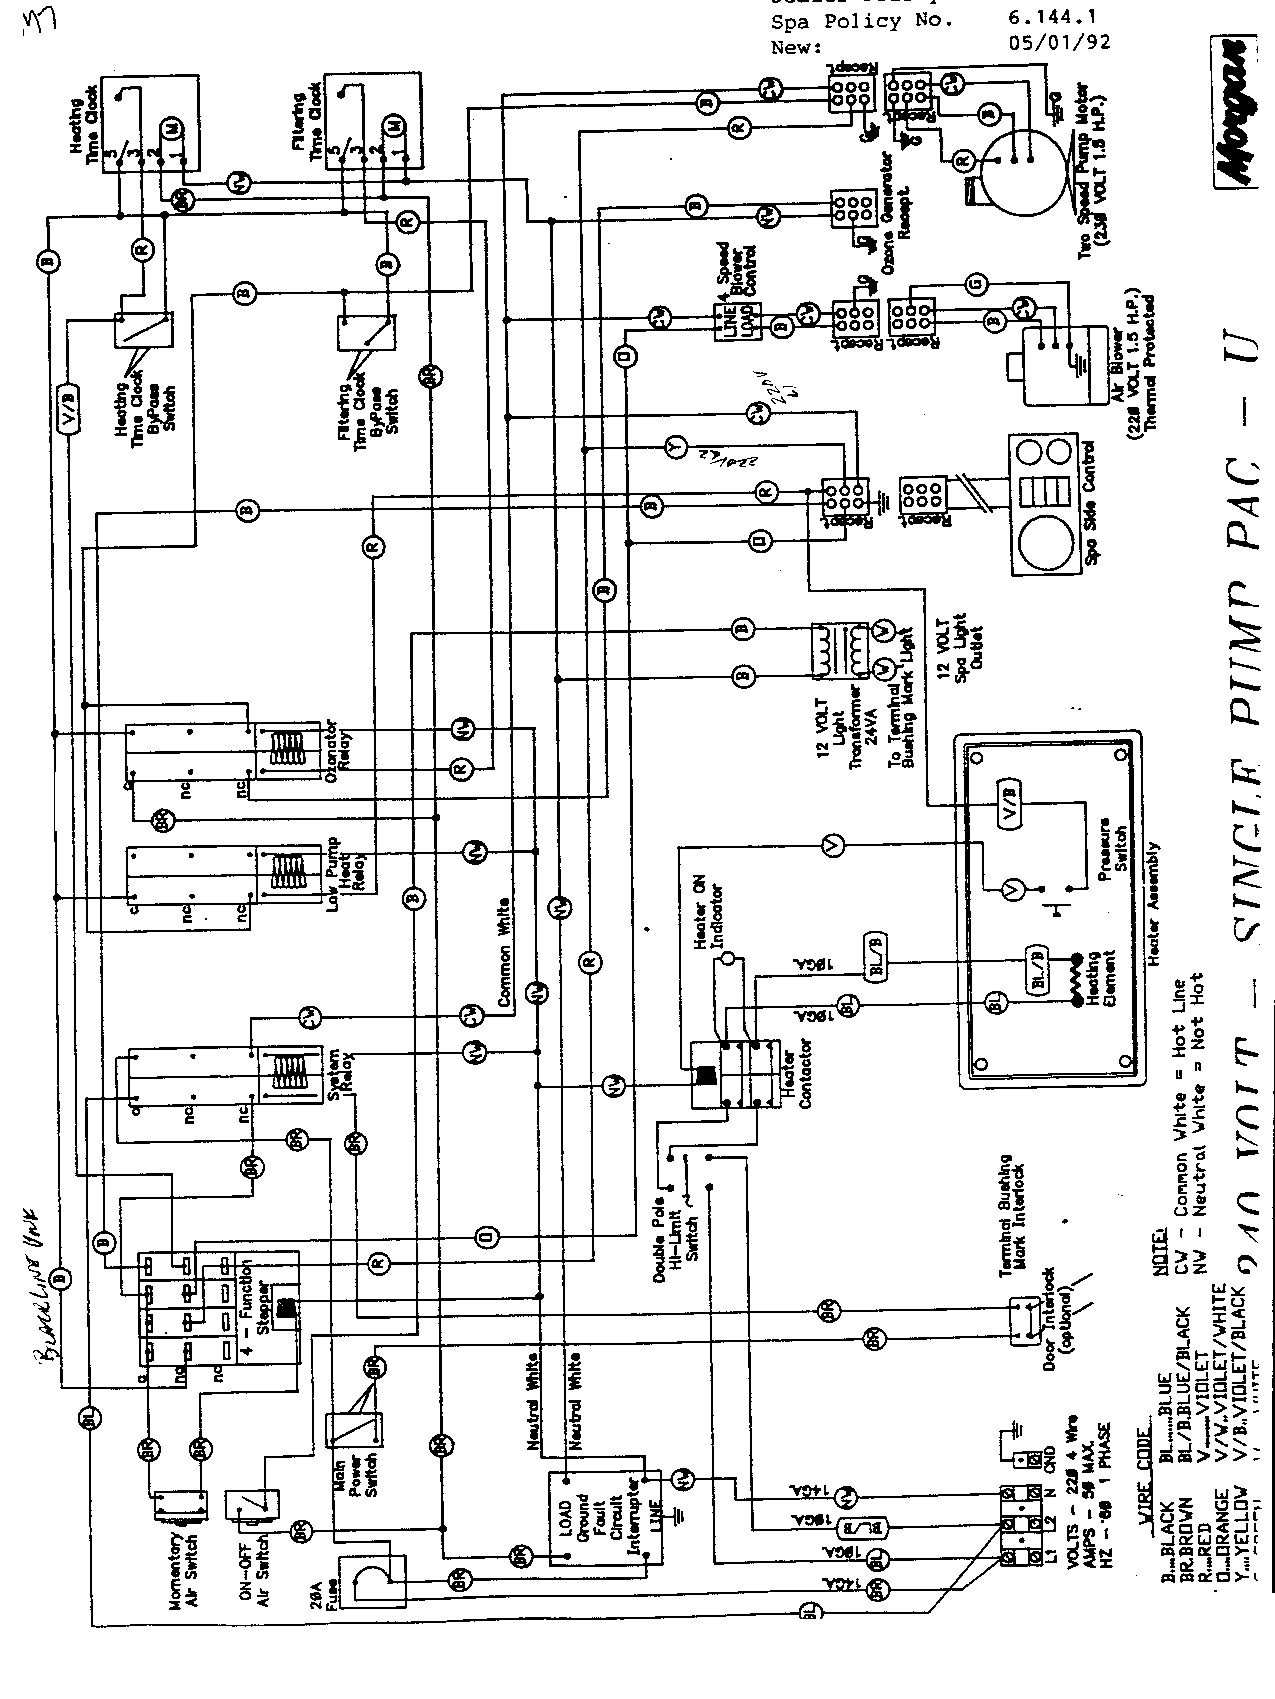 Cal Spa Wiring Diagram Simple Hot Tub Wiring Schematics Wiring Diagrams • Of Cal Spa Wiring Diagram